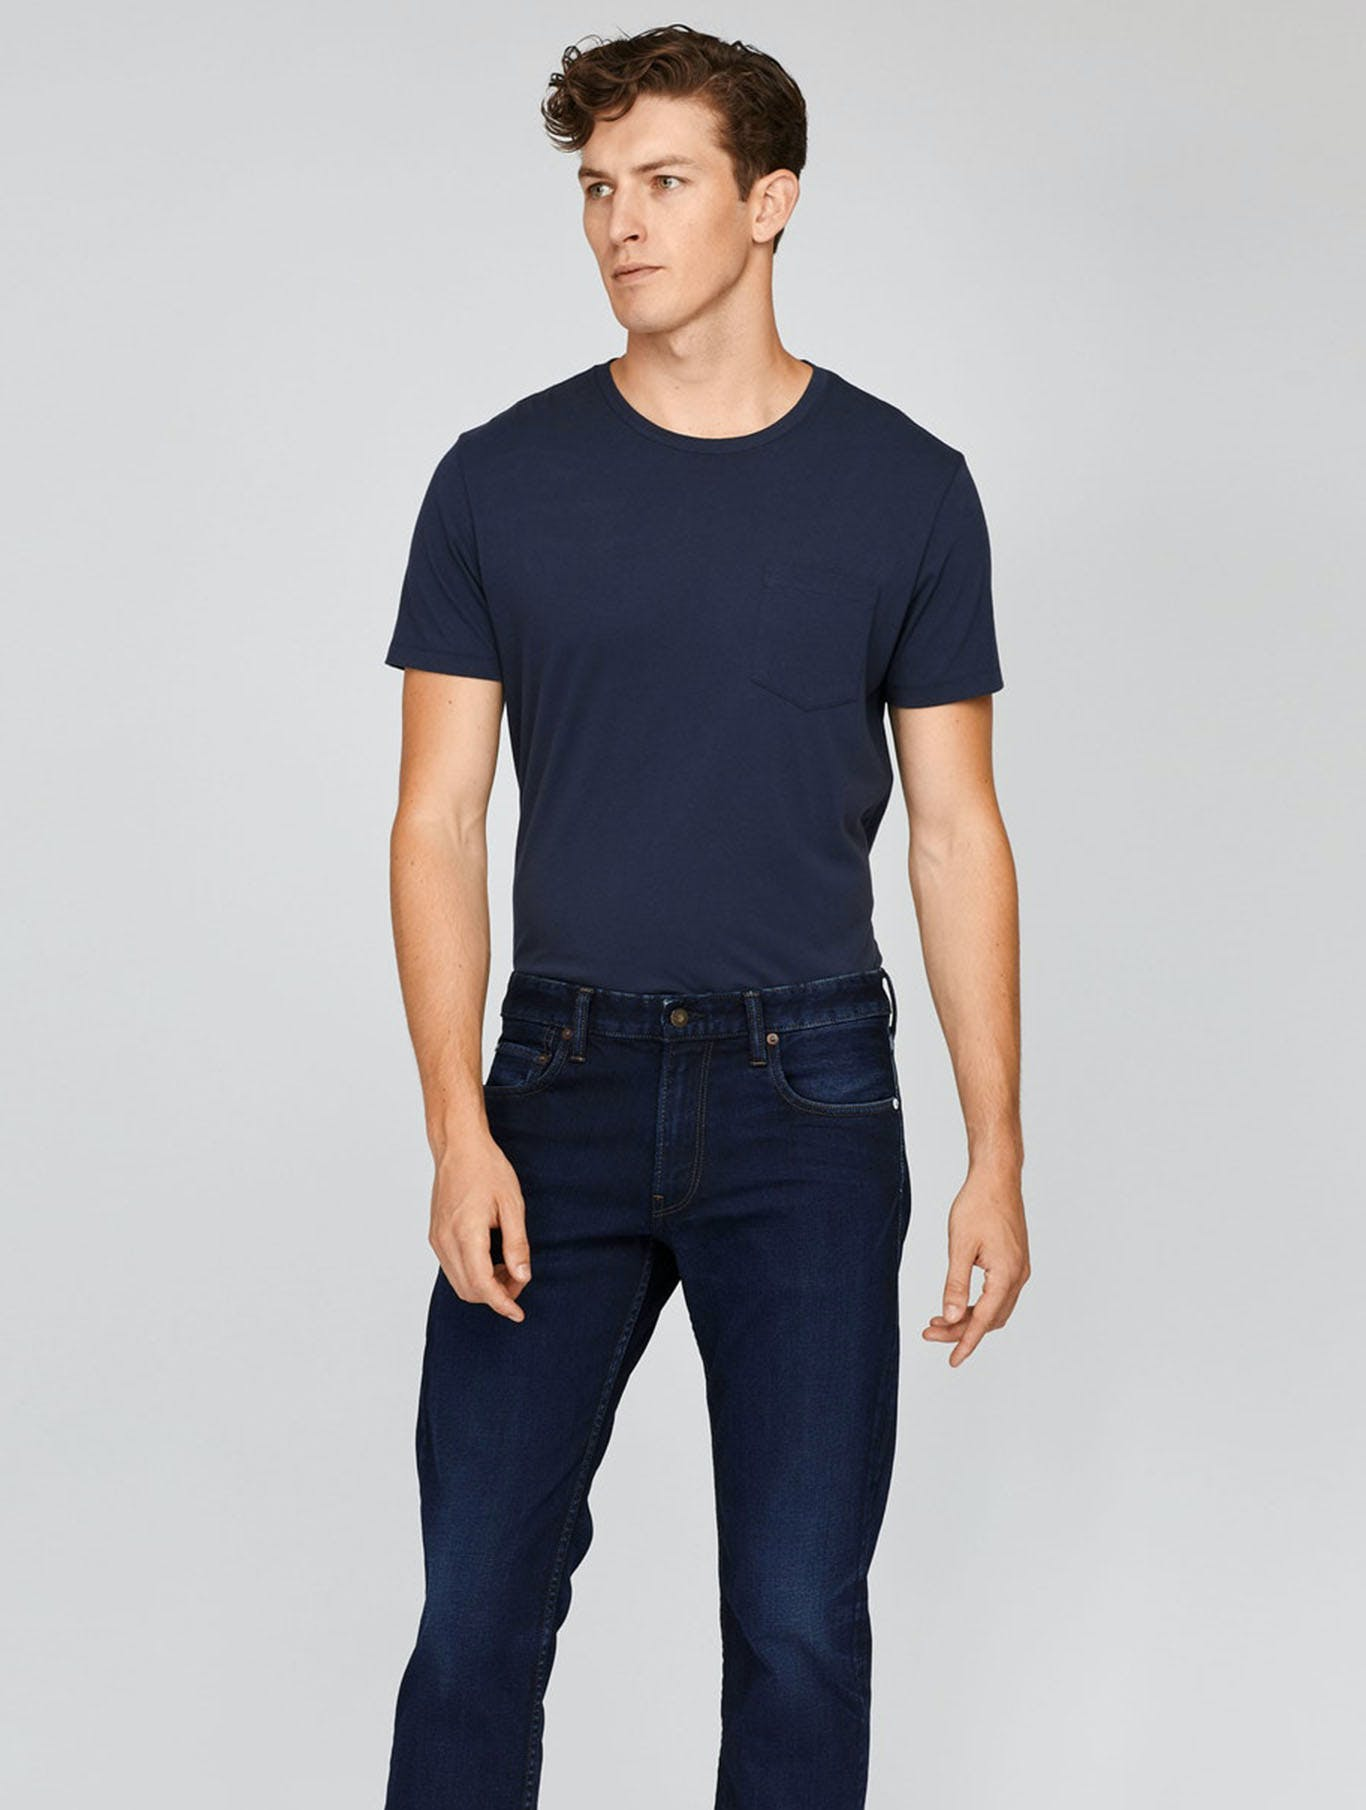 Image of man in jeans